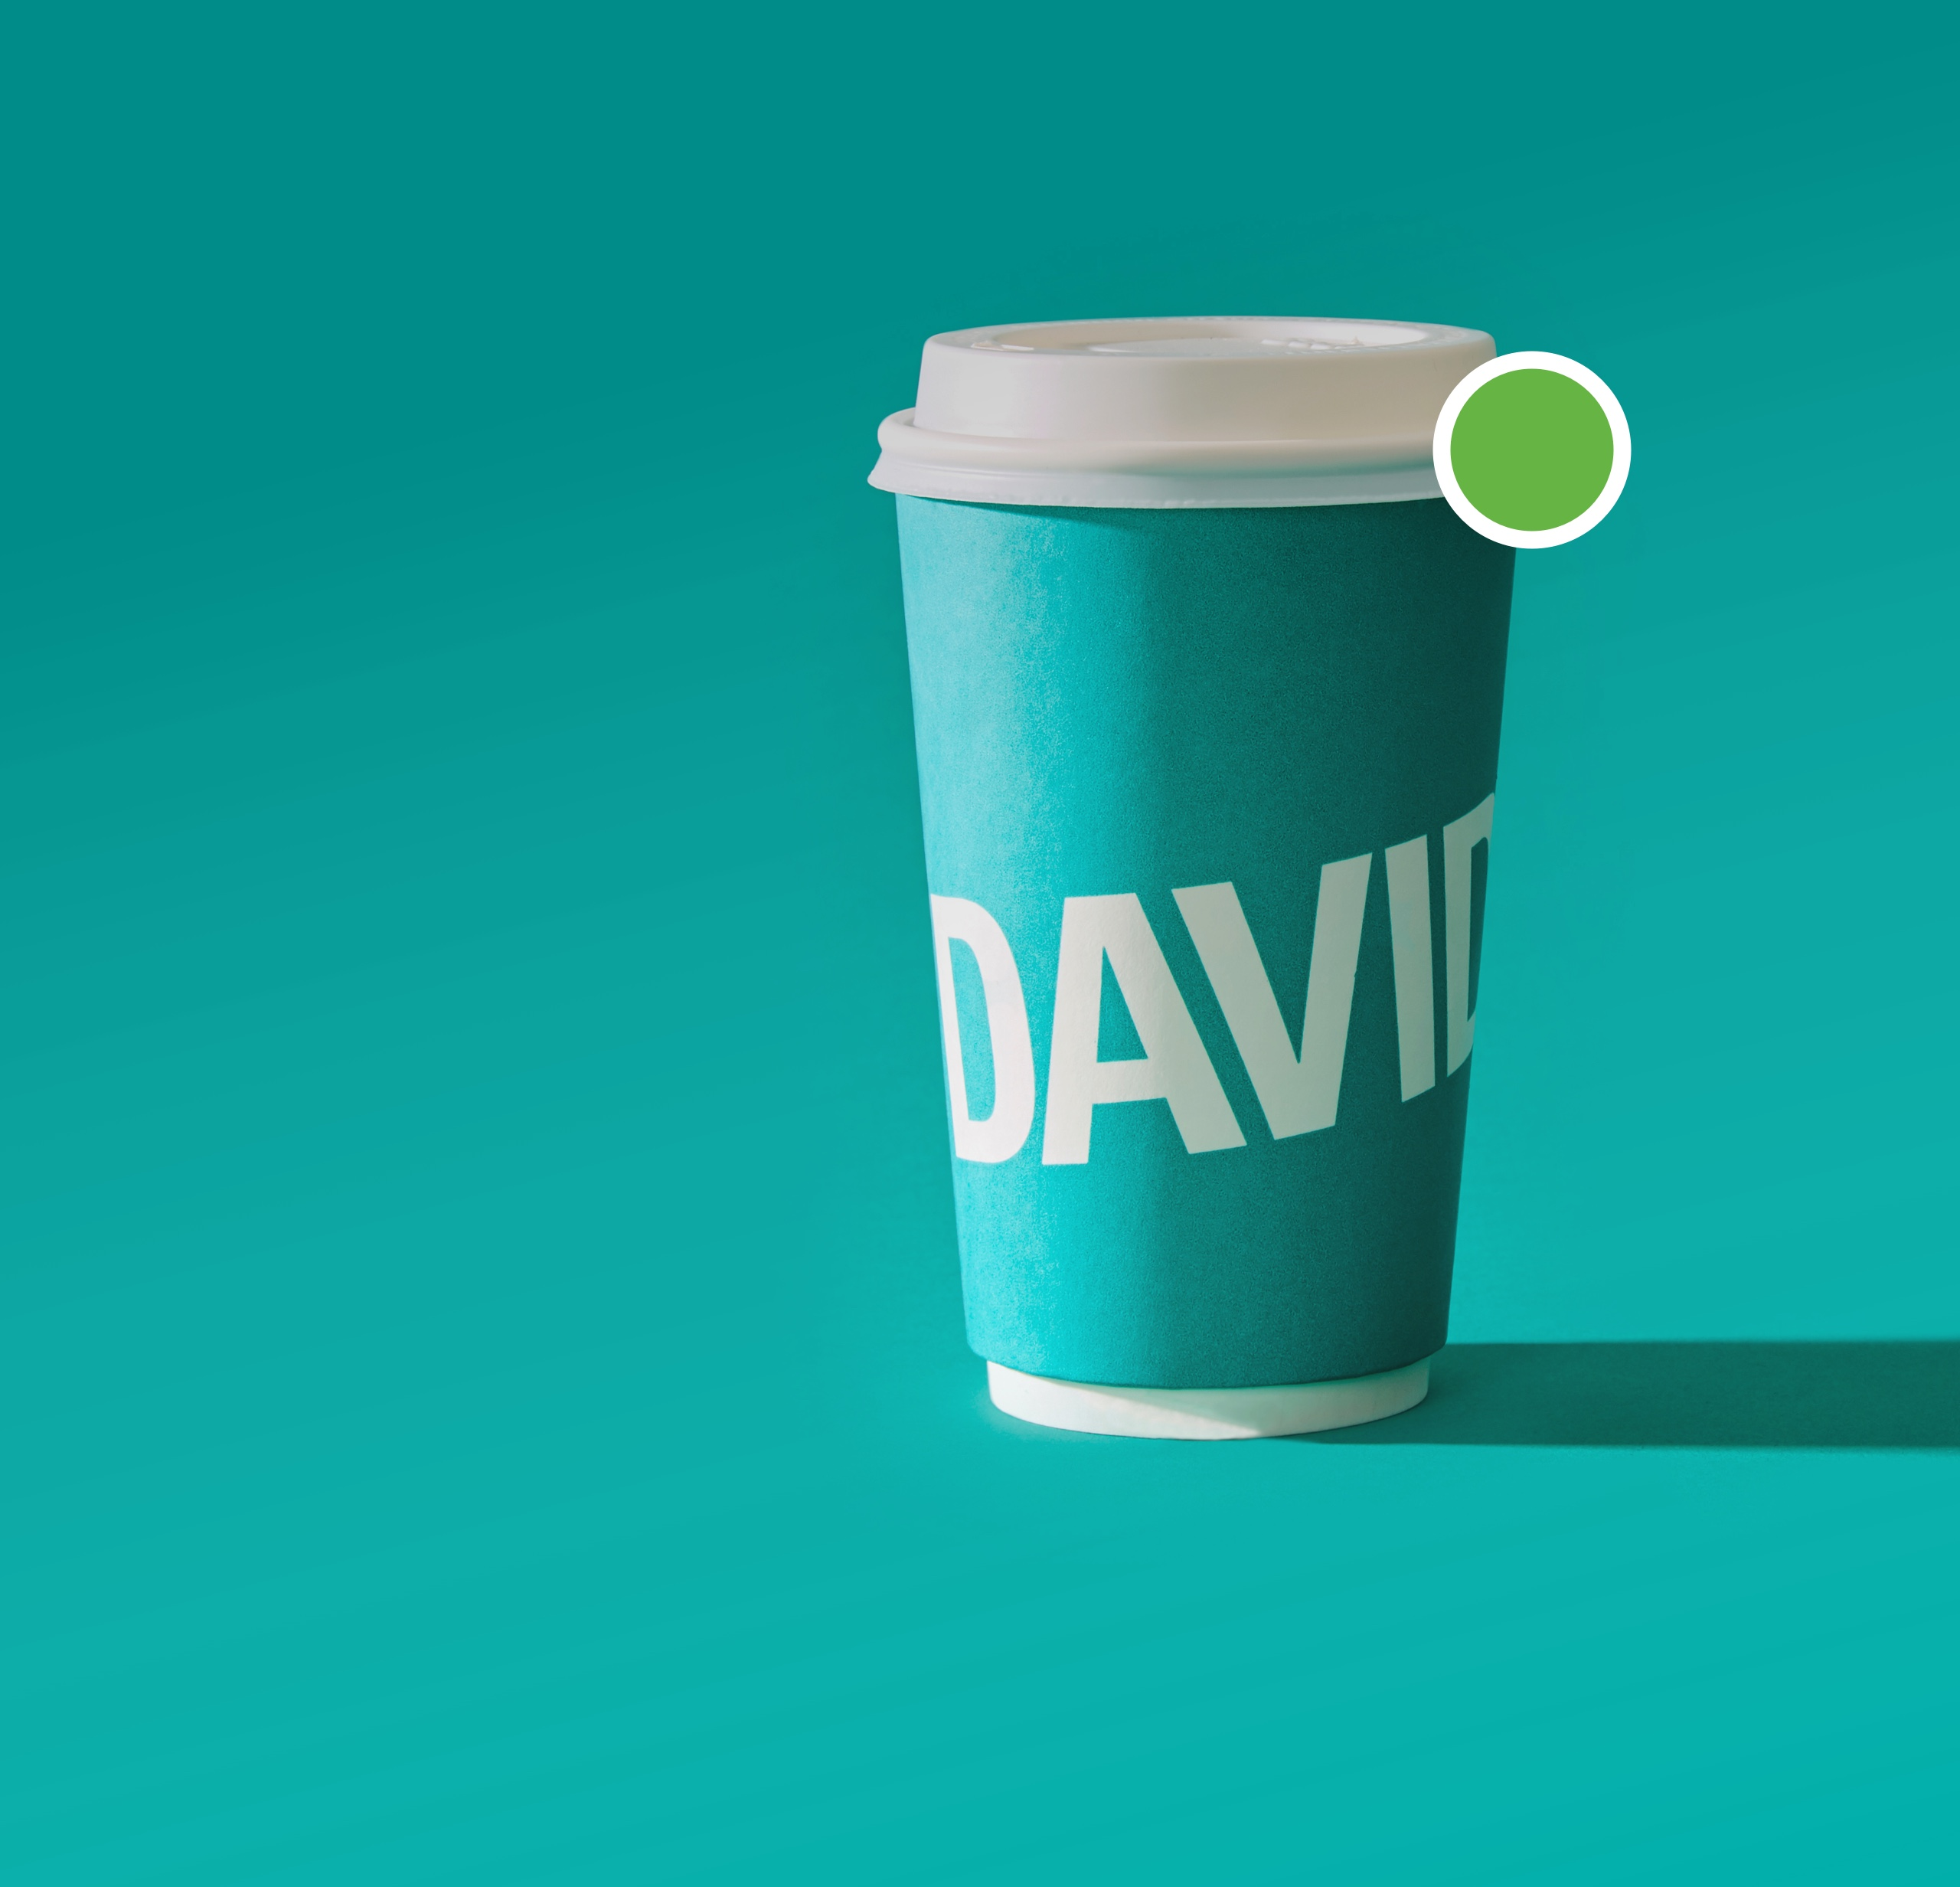 DAVIDsTEA teal to go cup with green active chat bubble.